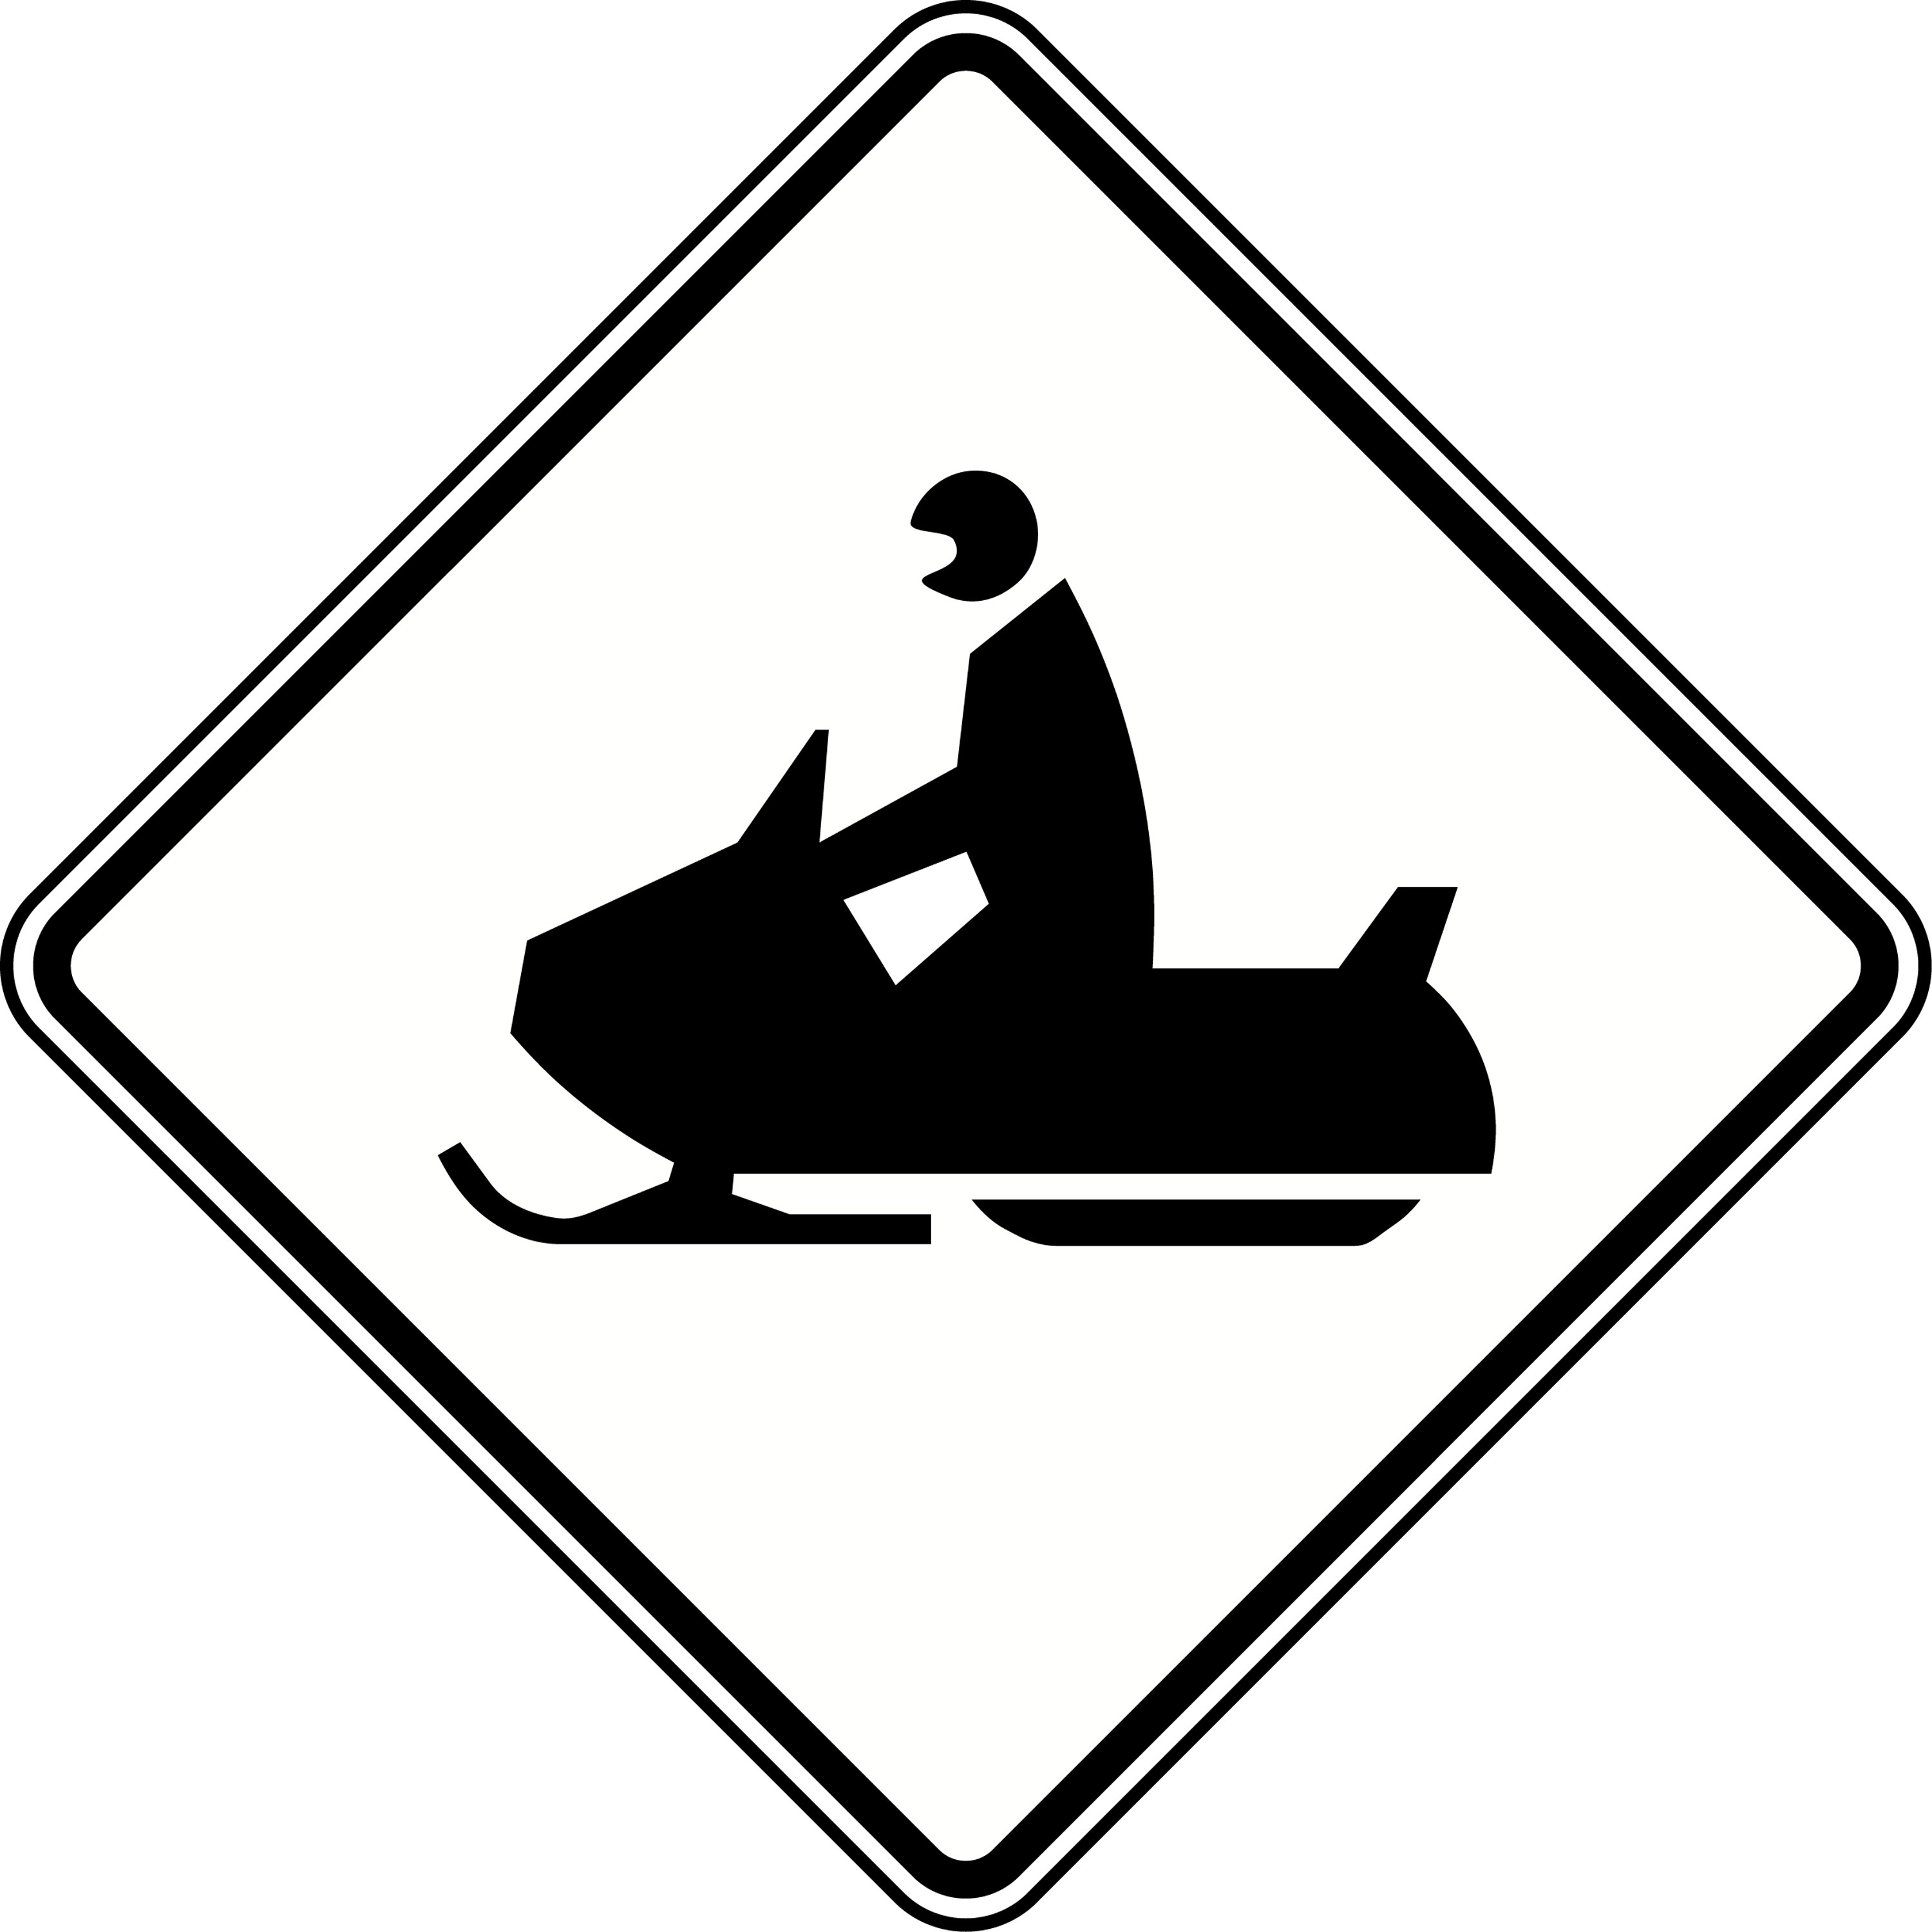 Road Crossing Clipart Black And White Snowmobile Crossing Black And White Clipart Etc